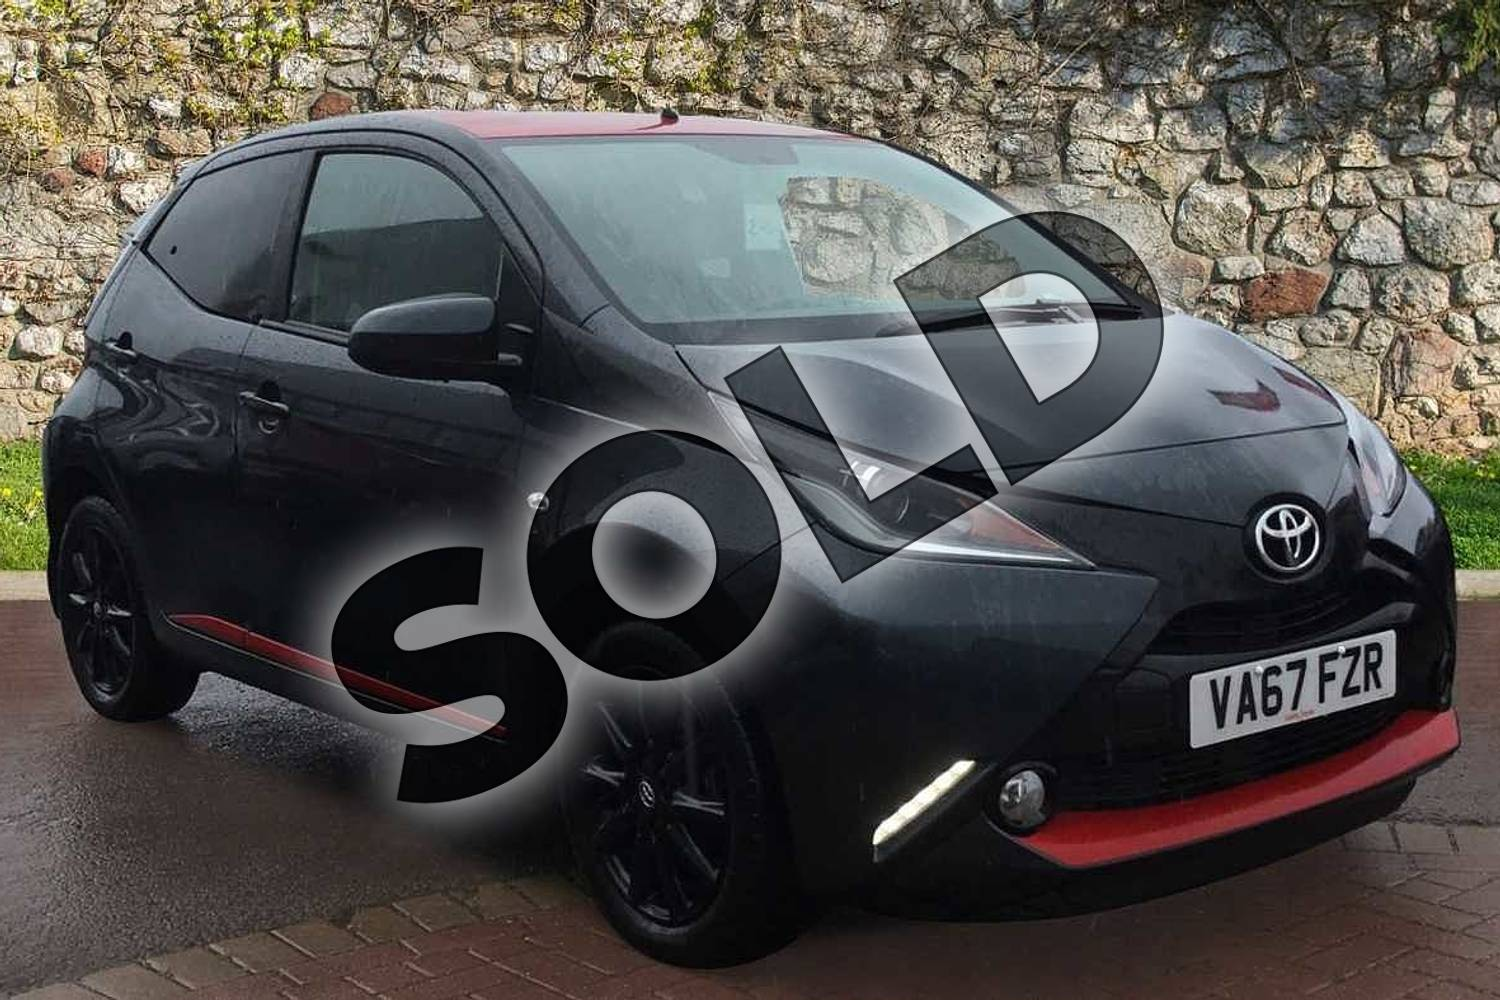 2018 Toyota AYGO Hatchback 1.0 VVT-i X-Press 5dr in Electro Grey at Listers Toyota Grantham